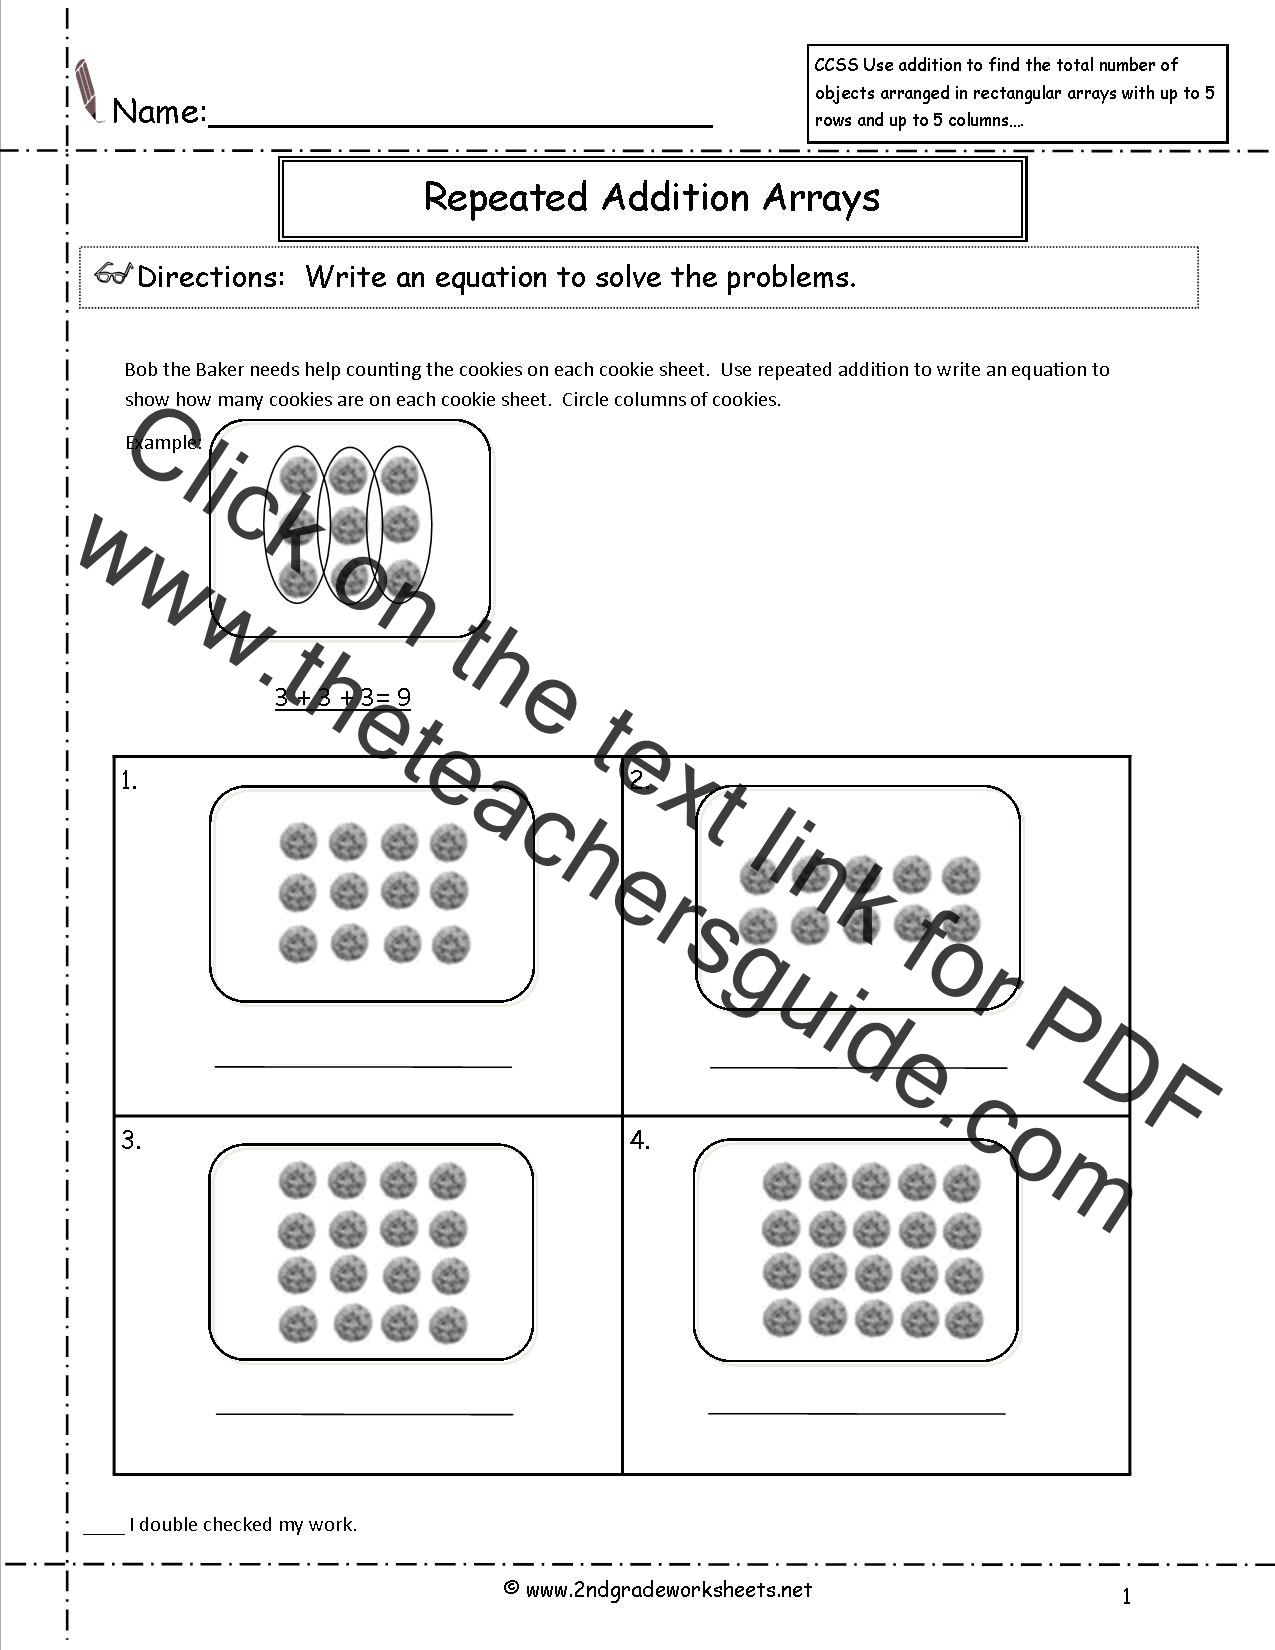 Printables Repeated Addition Worksheets ccss 2 oa 4 worksheets repeated addition arrays worksheets